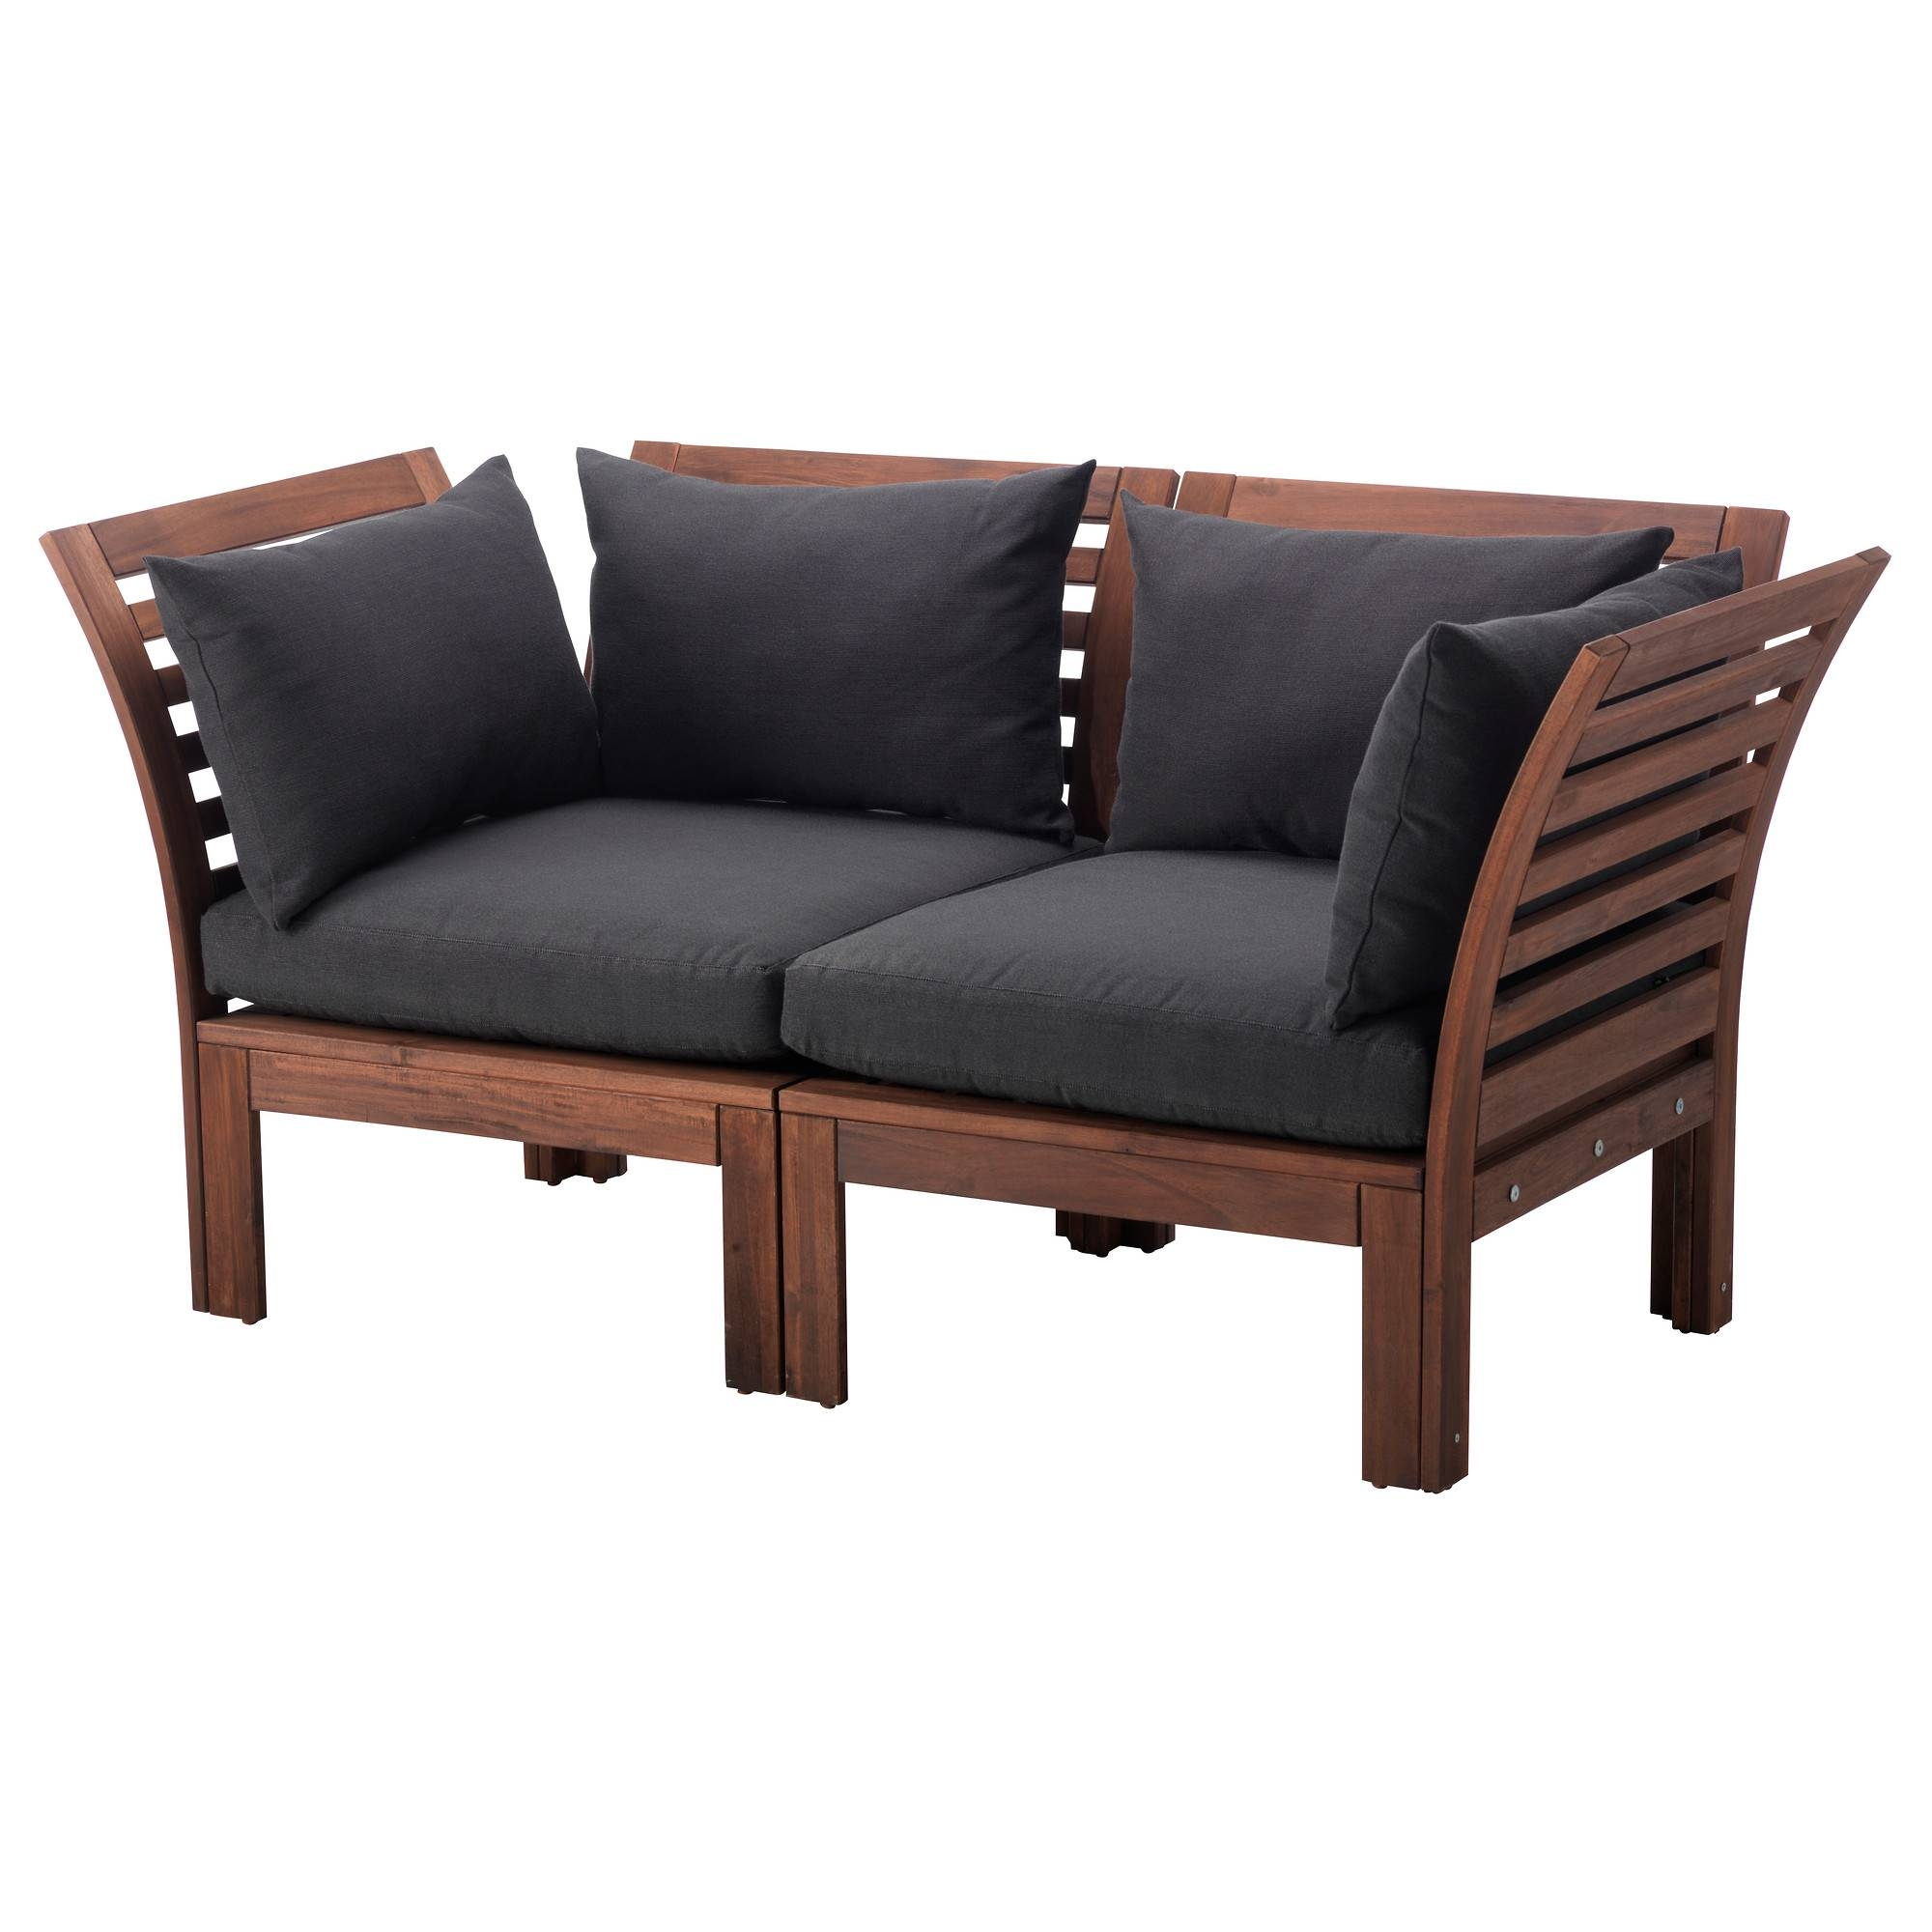 Lounging & Relaxing Furniture - Ikea within Outdoor Sofa Chairs (Image 17 of 30)